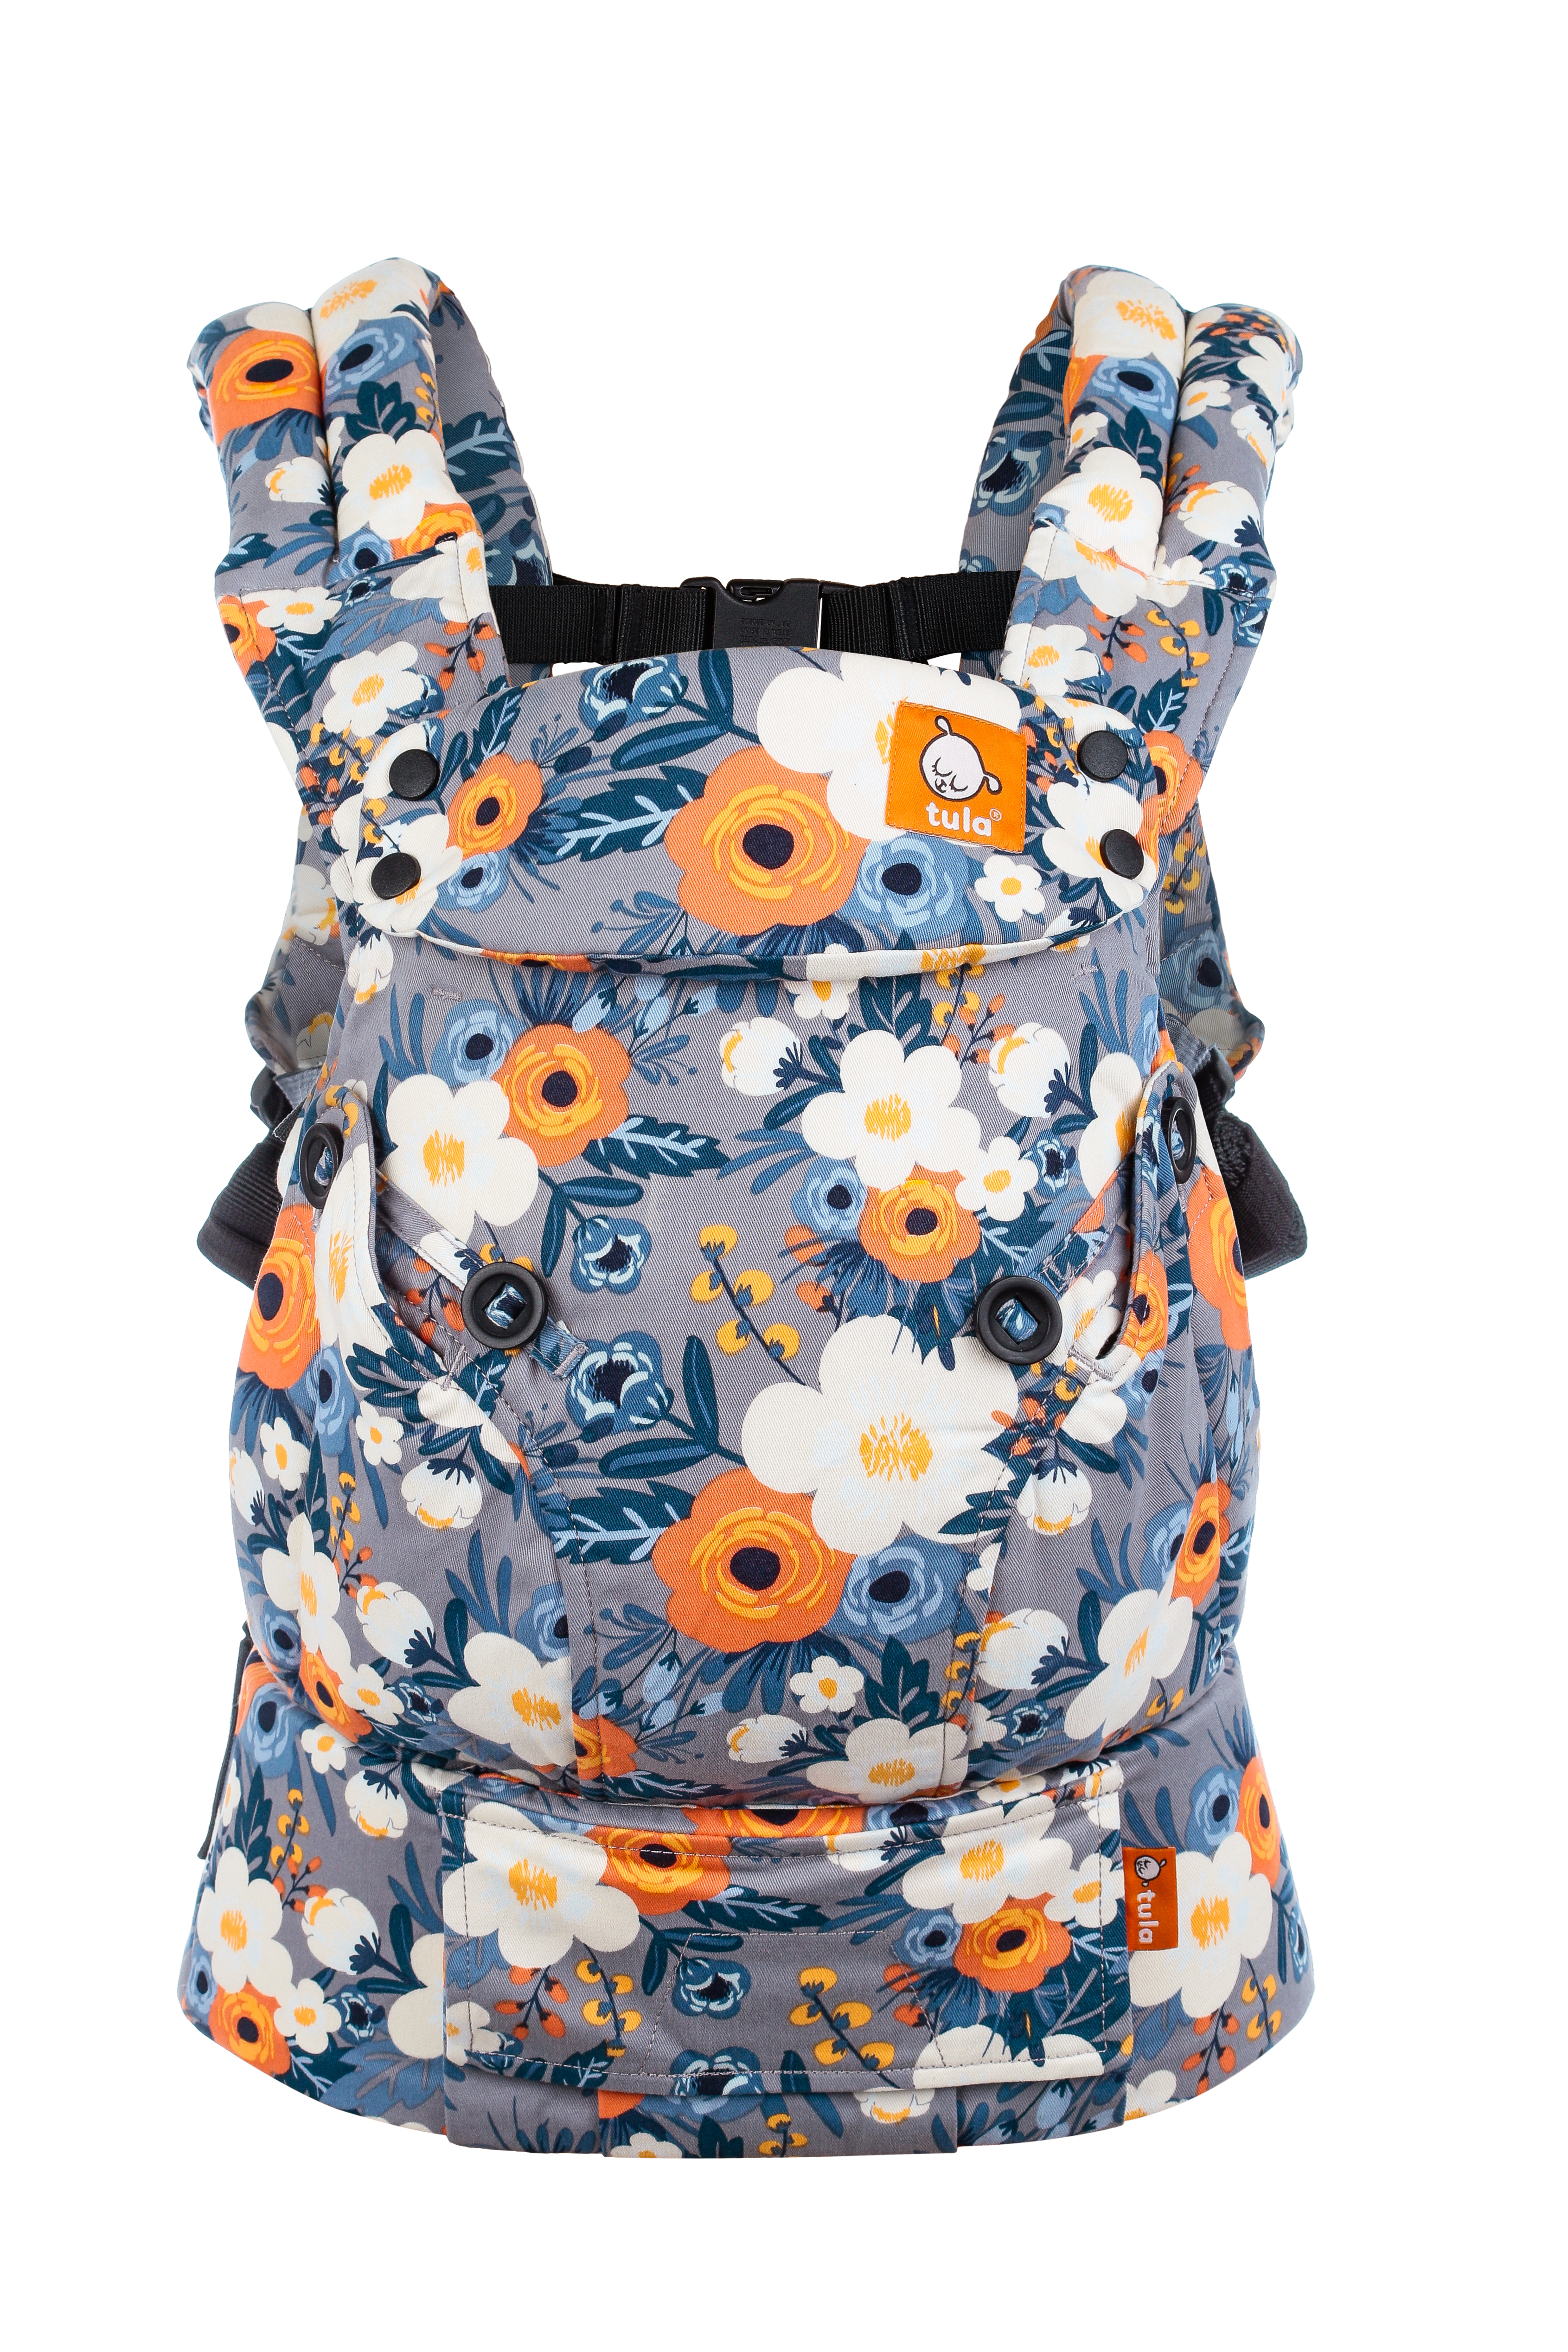 tula-baby-explorer-baby-carrier-french-marigold-ghost